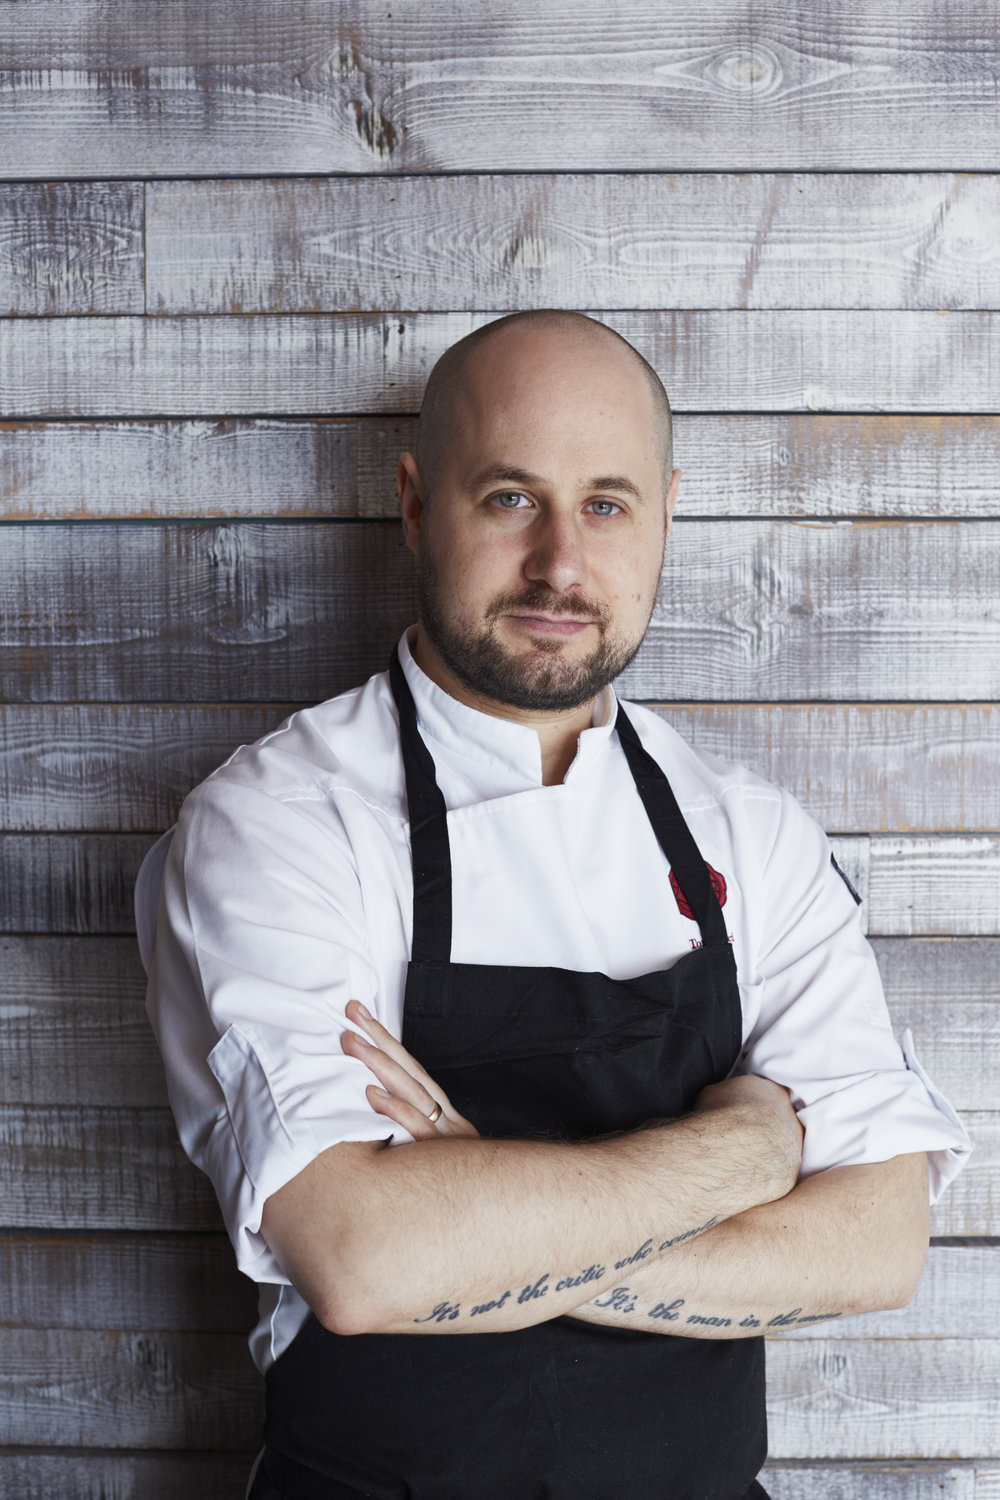 Episode 3: Tom Cenci - Tom Cenci has done six and a half years as executive chef of renowned restaurant, Duck and Waffle. Tom's adventure continues as he moves on to other opportunities and he explains what life was like running the highest, 24 hour eatery in London (which is also open every day of the year).We talk about taking career opportunities abroad and how anxiety doesn't just go away…it's how you deal with it.